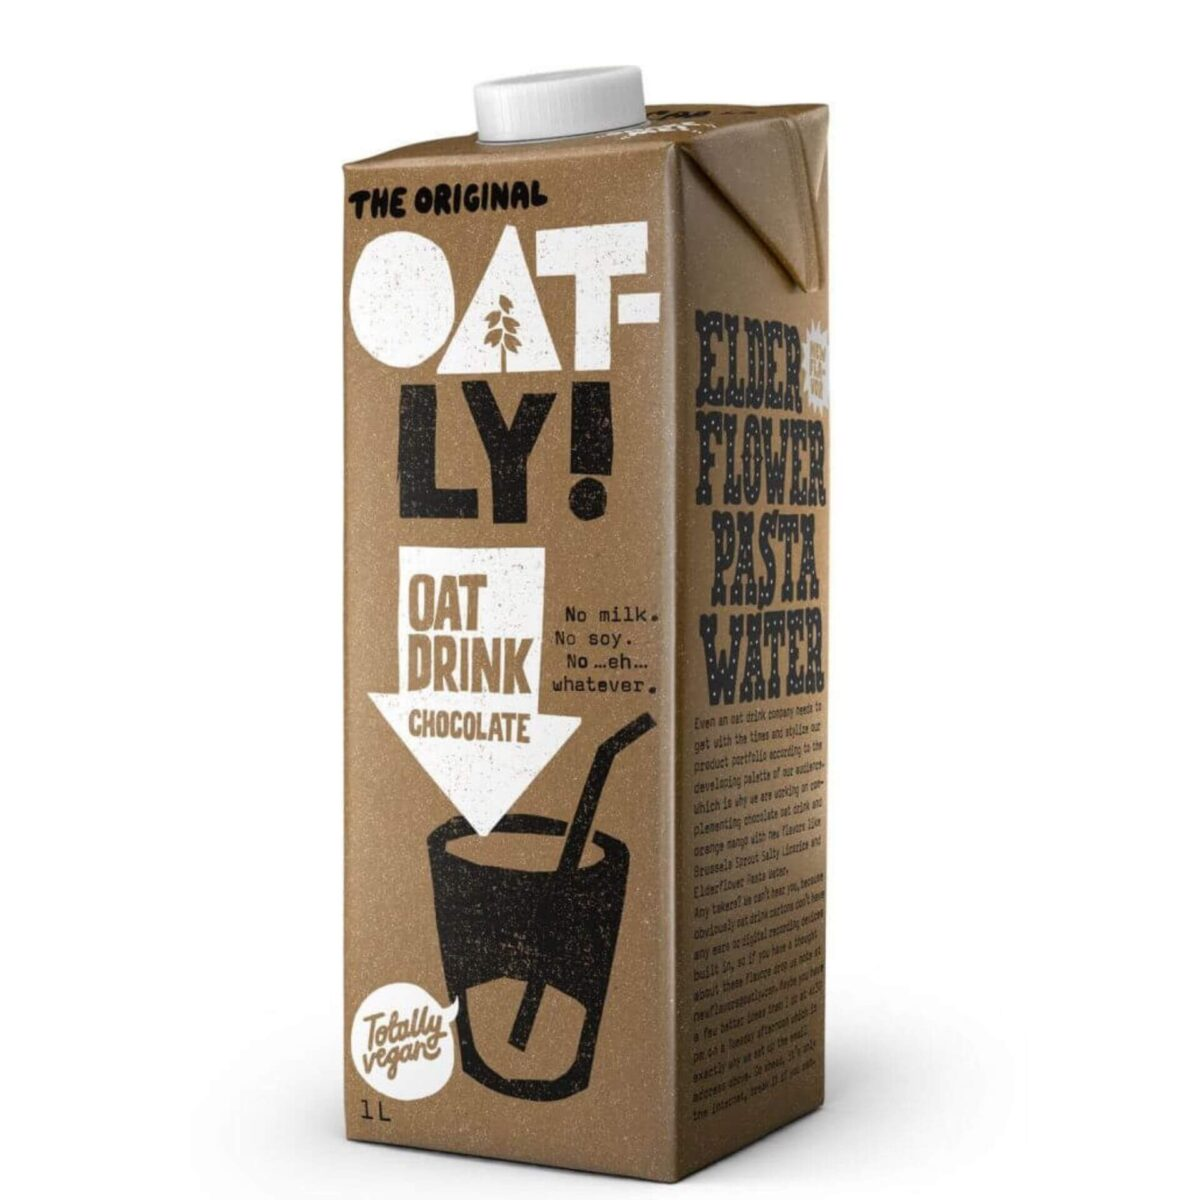 Oatly-Oat-Drink-Chocolate-1-litre-601635